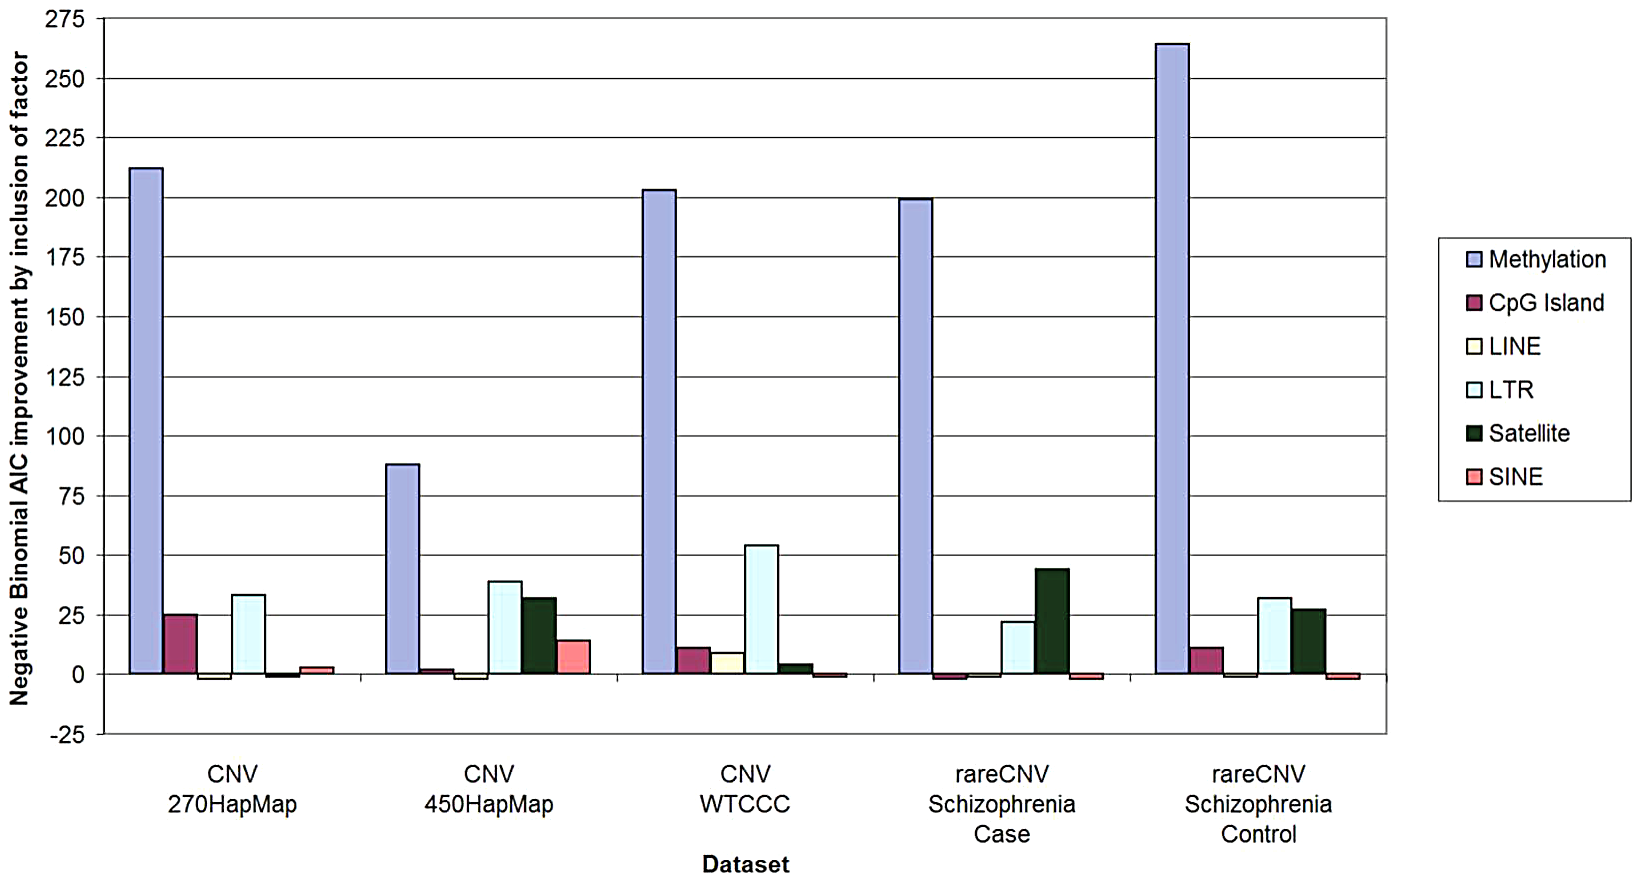 Predictive power of methylation and other genomic factors for CNV counts.